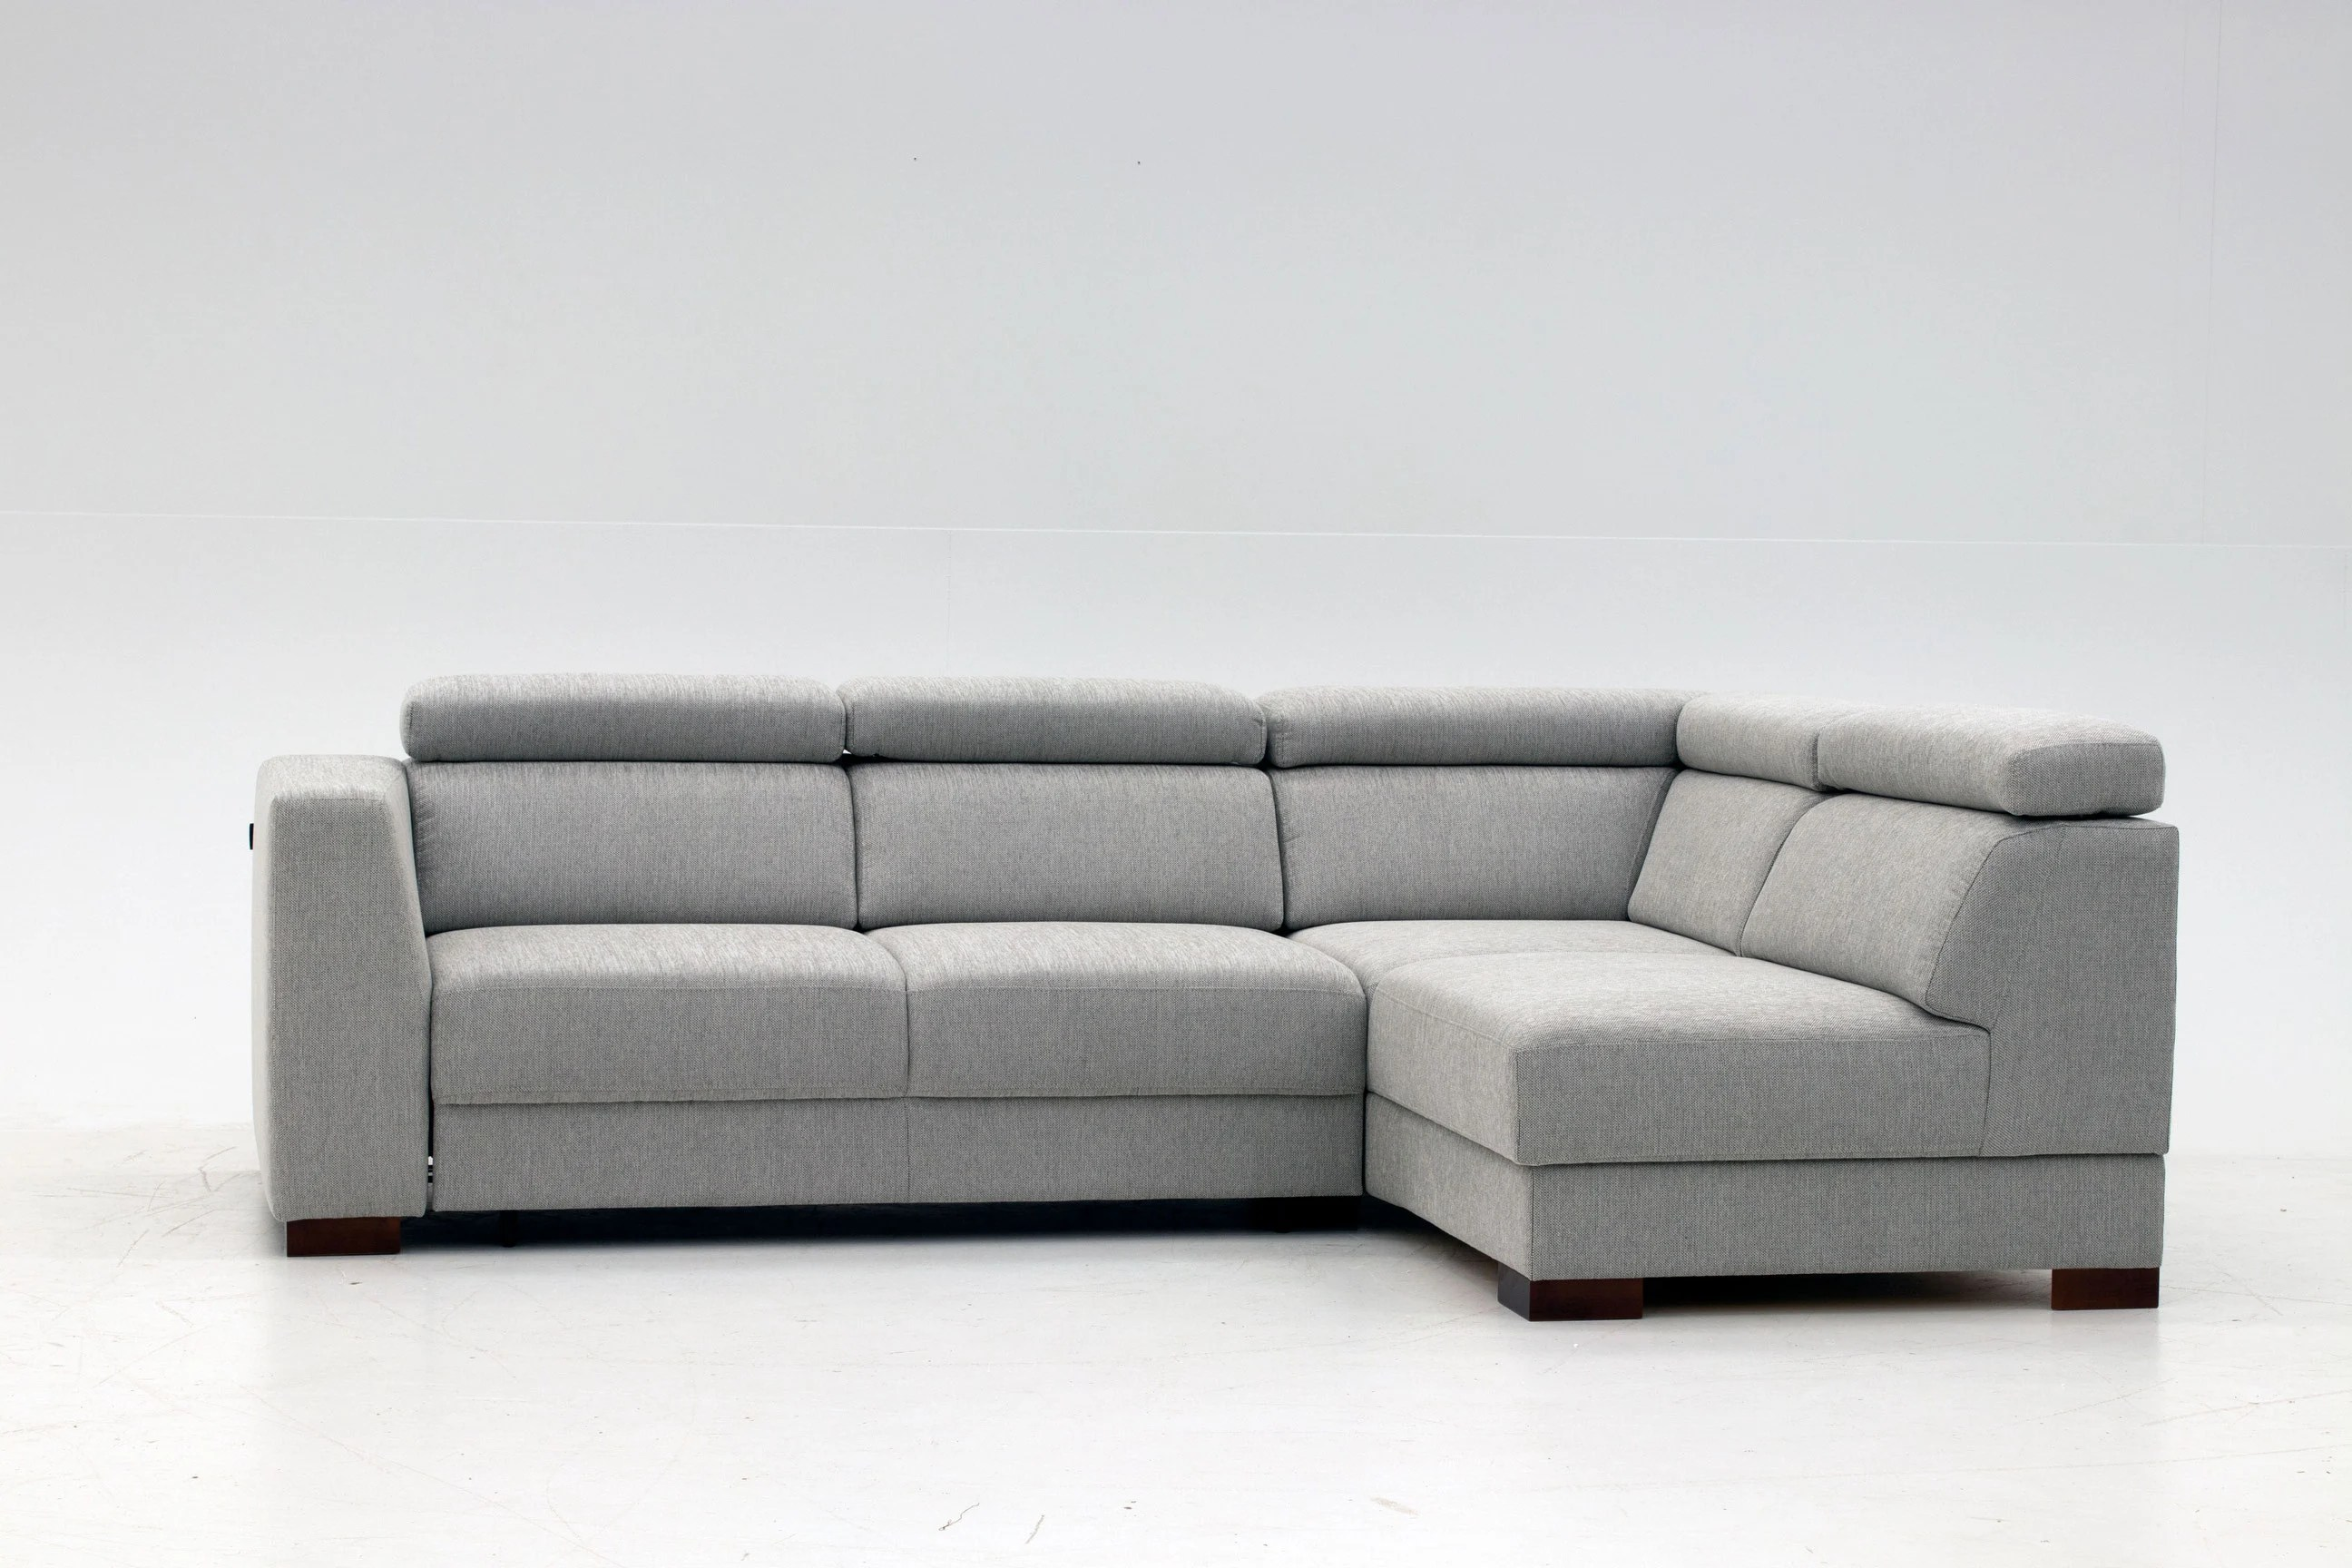 Focus On Furniture Sofa Bed Halti Sectional Sofa Sleeper Full Xl Size Rhf By Luonto Furniture